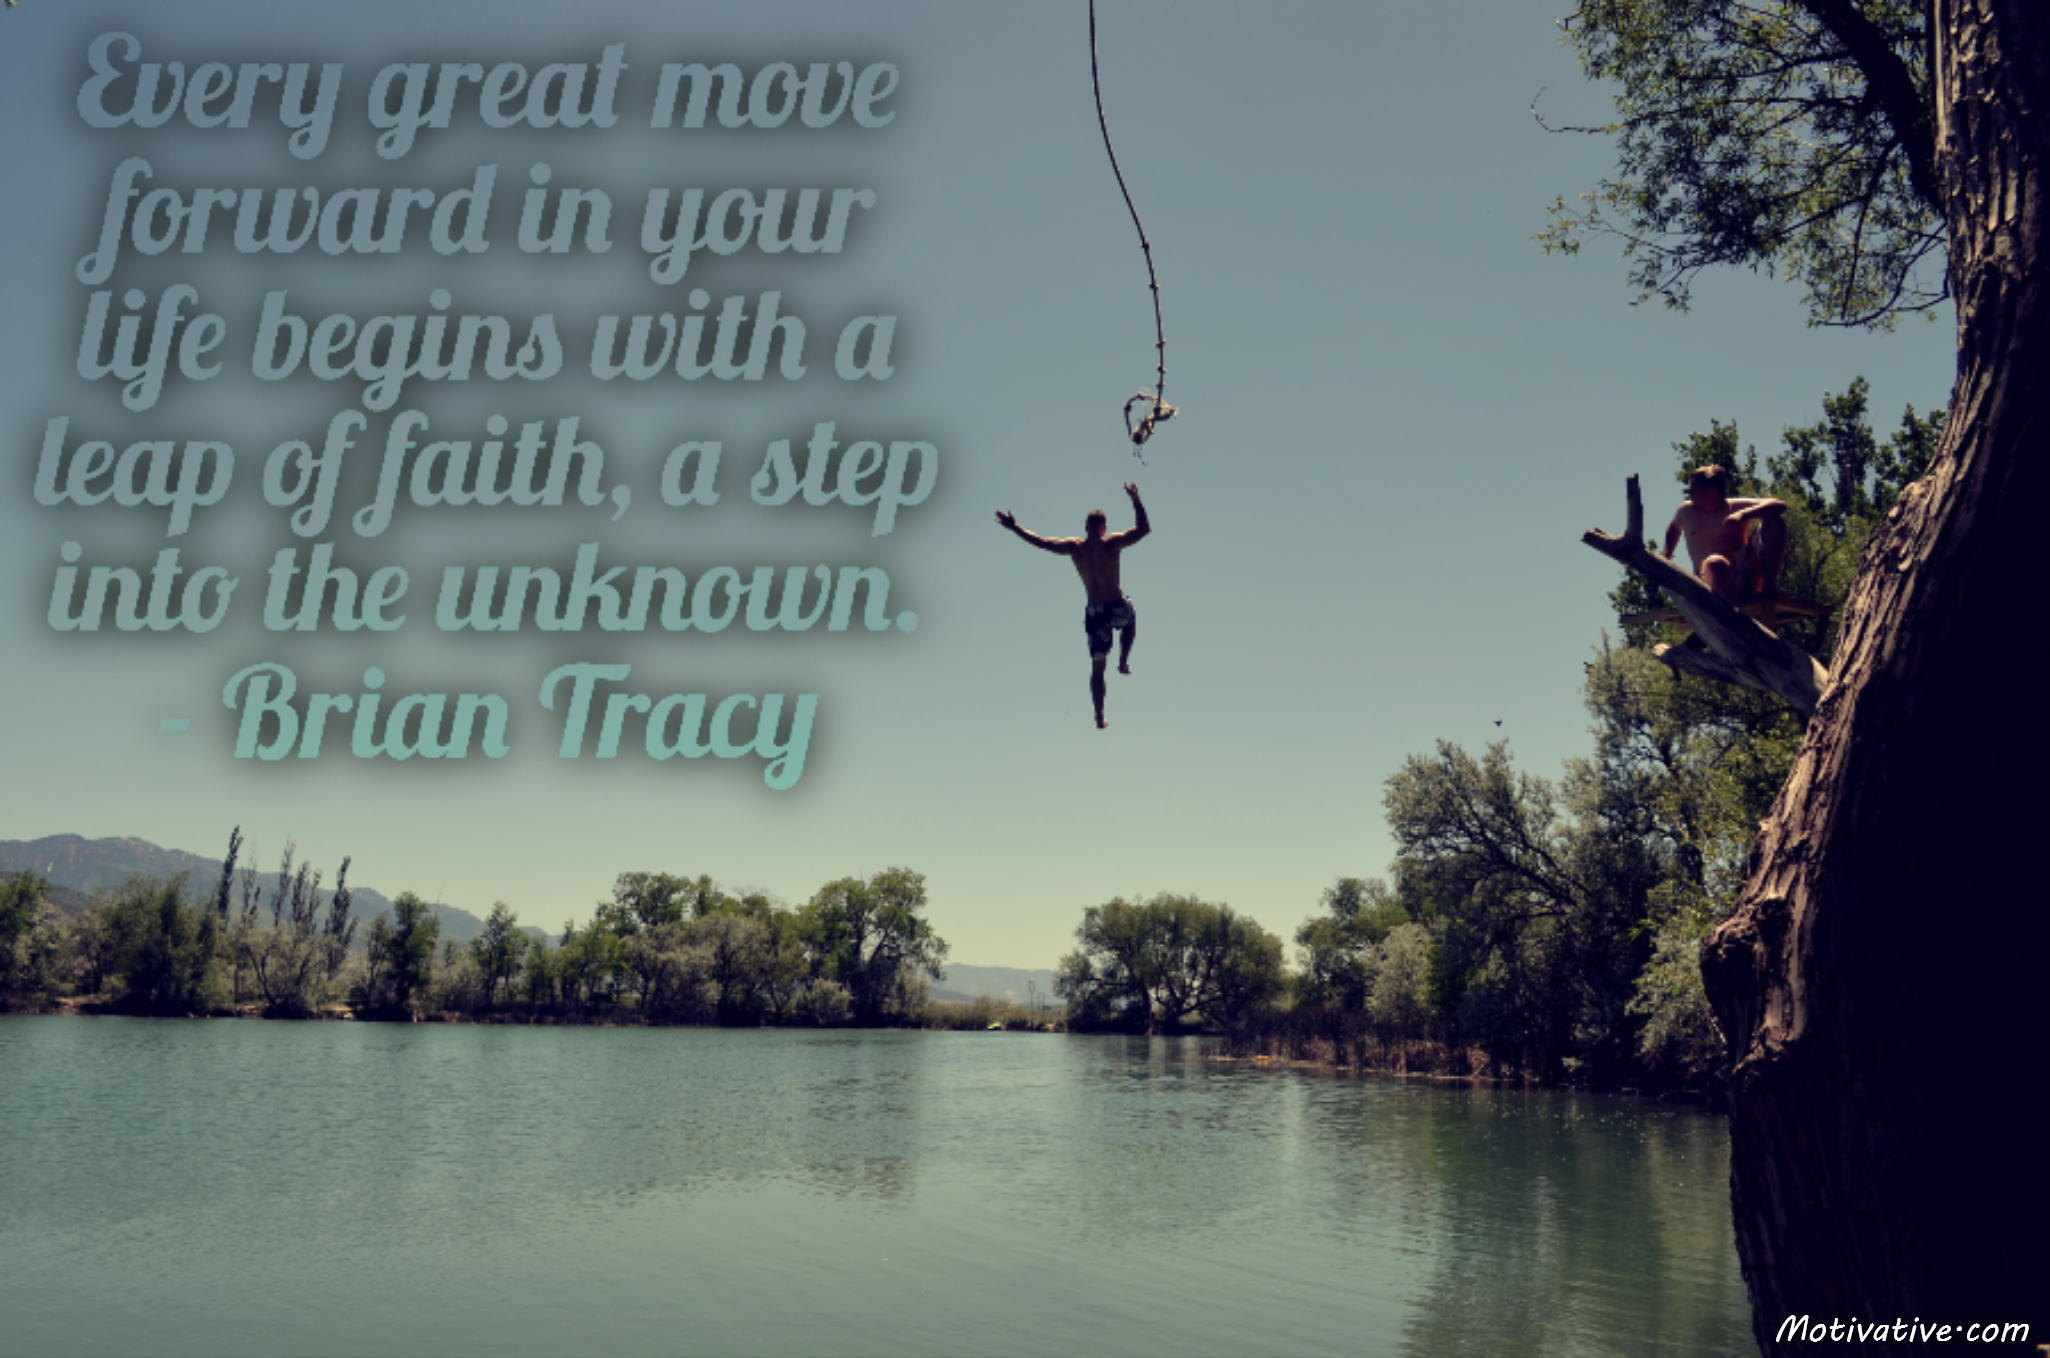 Every great move forward in your life begins with a leap of faith, a step into the unknown. – Brian Tracy